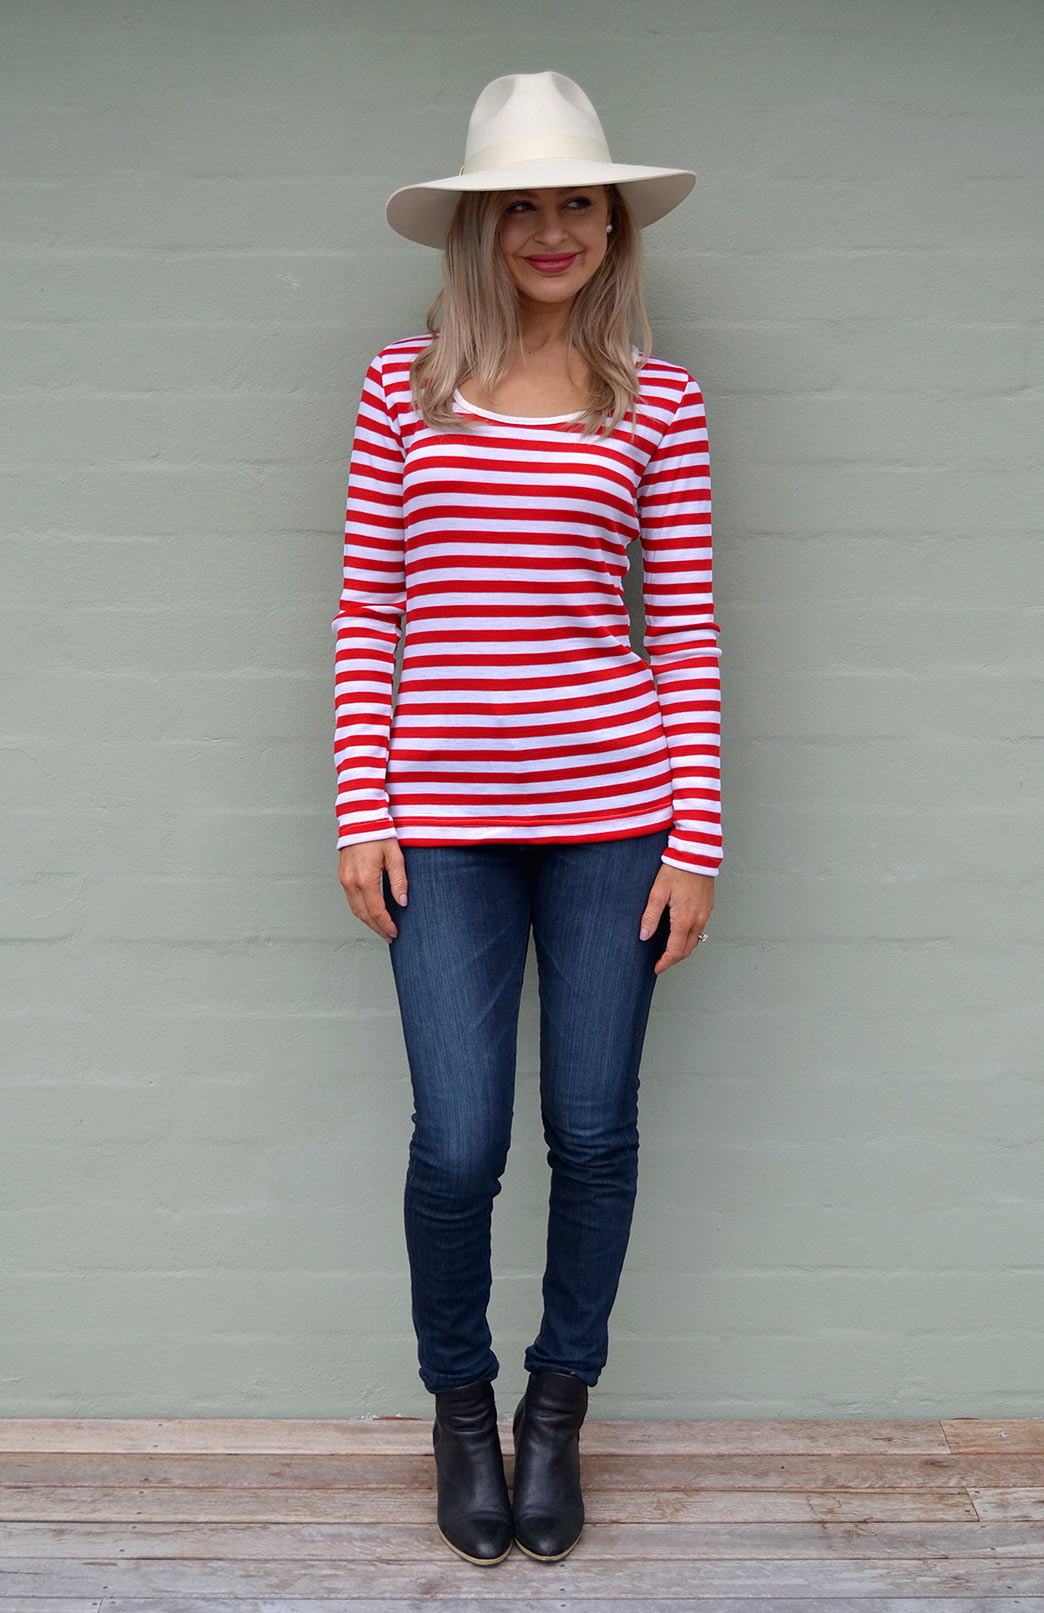 Scoop Neck Top - Rib Fabric - Women's Striped Merino Wool Long Sleeve Top - Smitten Merino Tasmania Australia